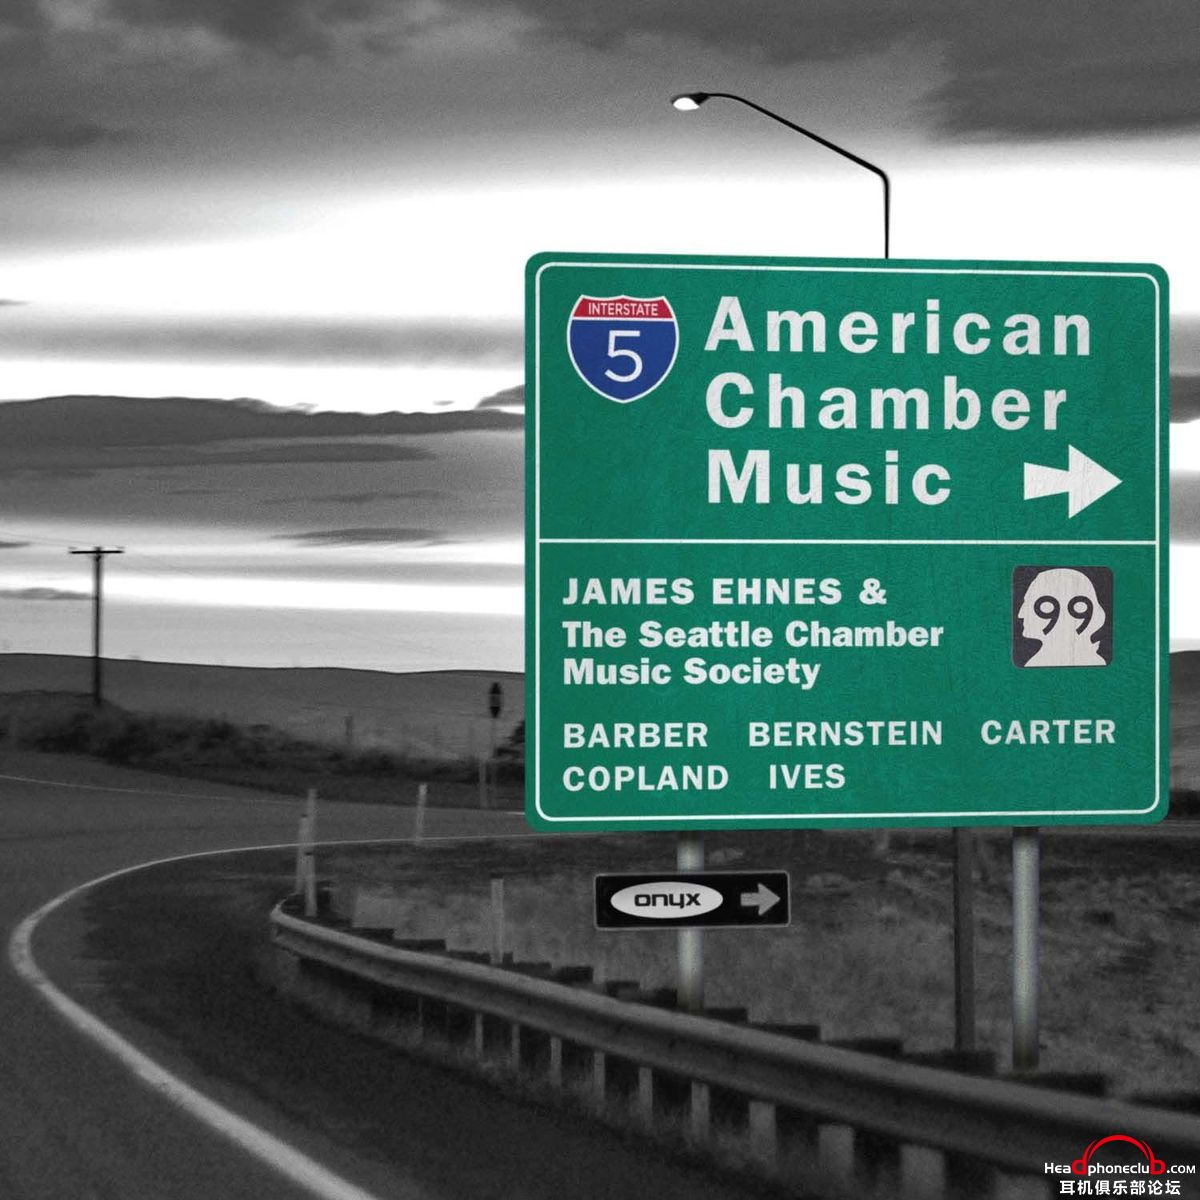 James Ehnes, Seattle Chamber Music Society - American Chamber Music (24-96, Onyx.jpg